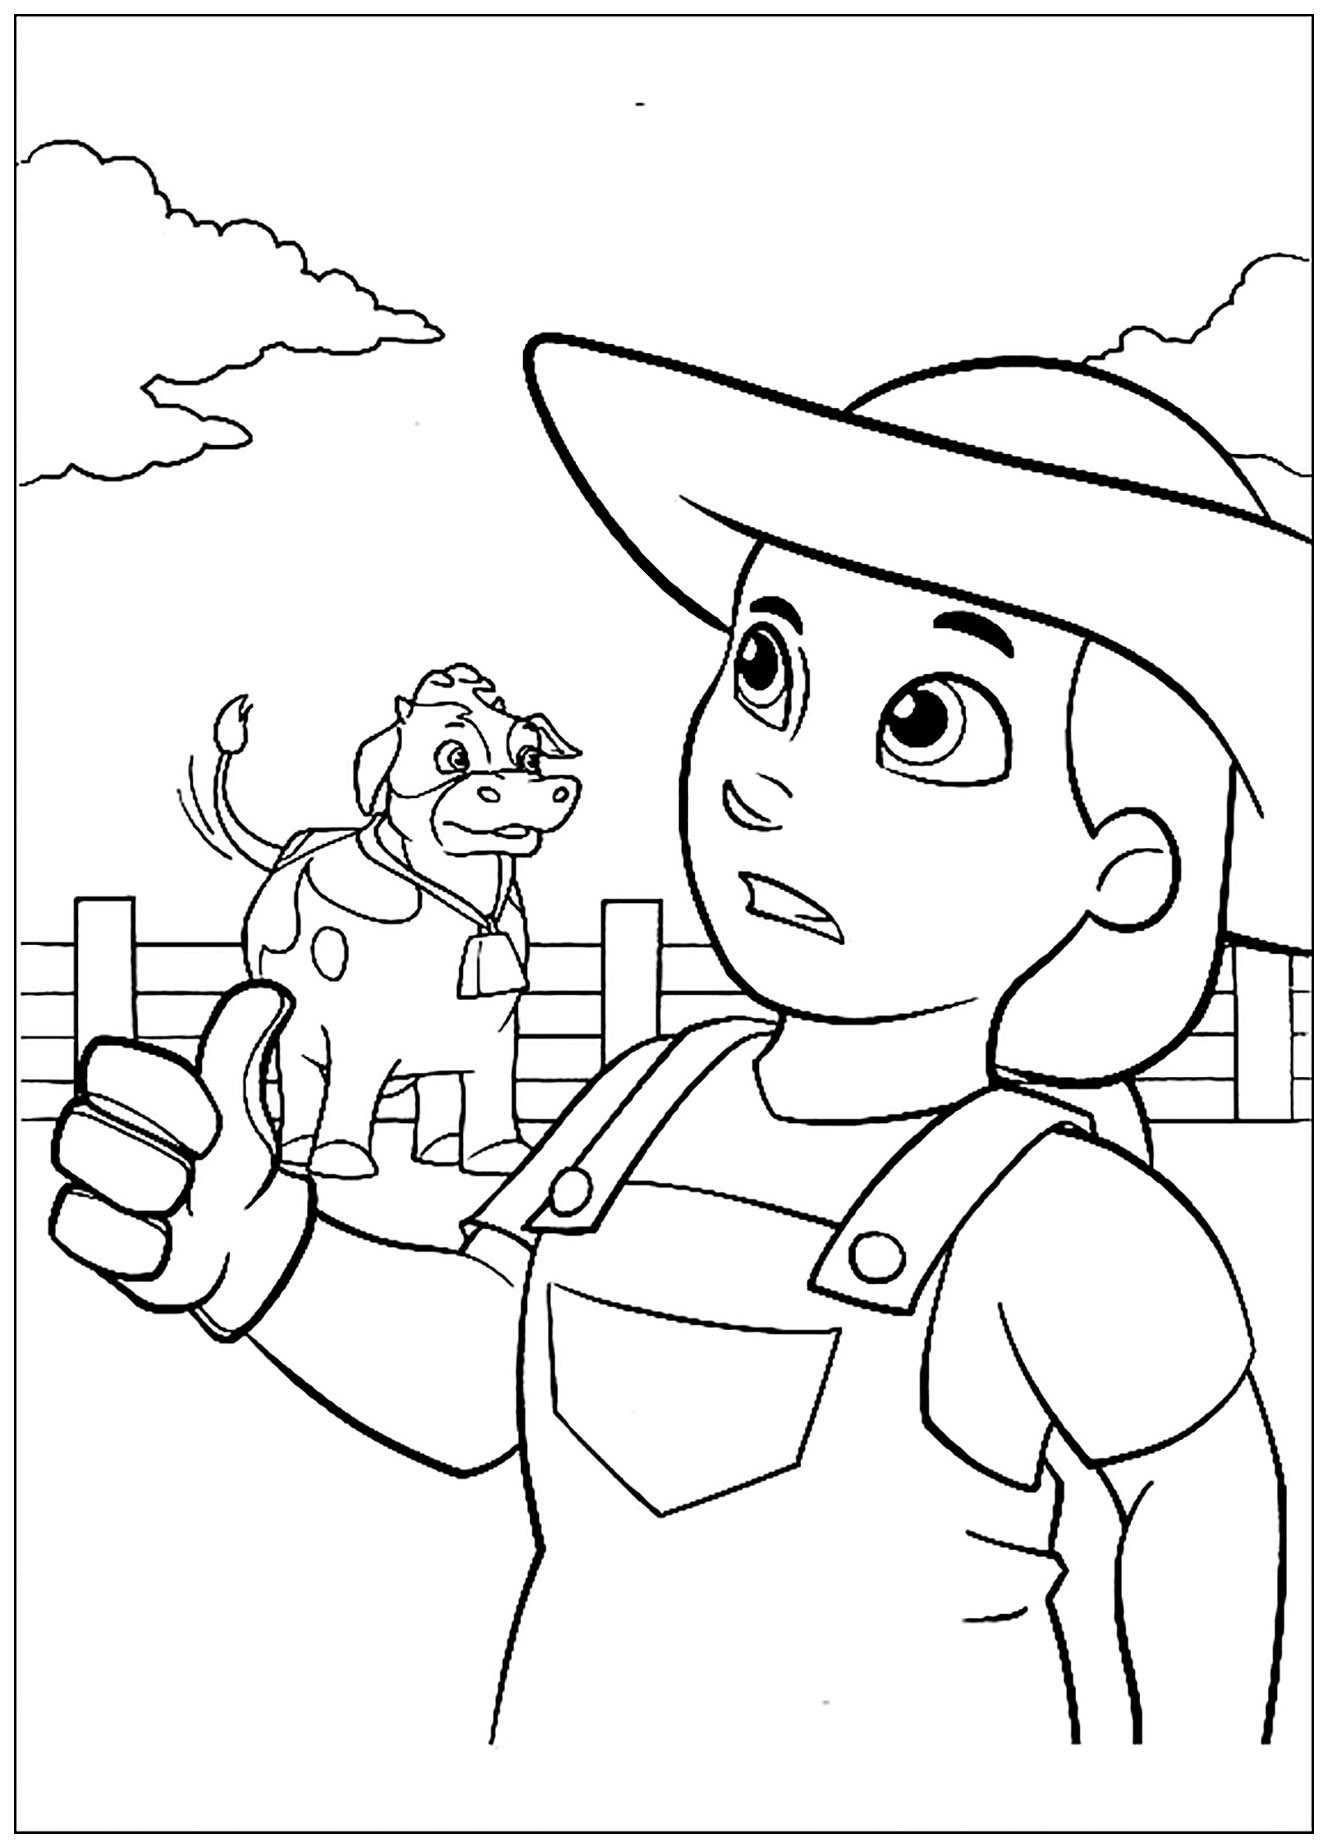 Free Paw Patrol coloring page to print and color